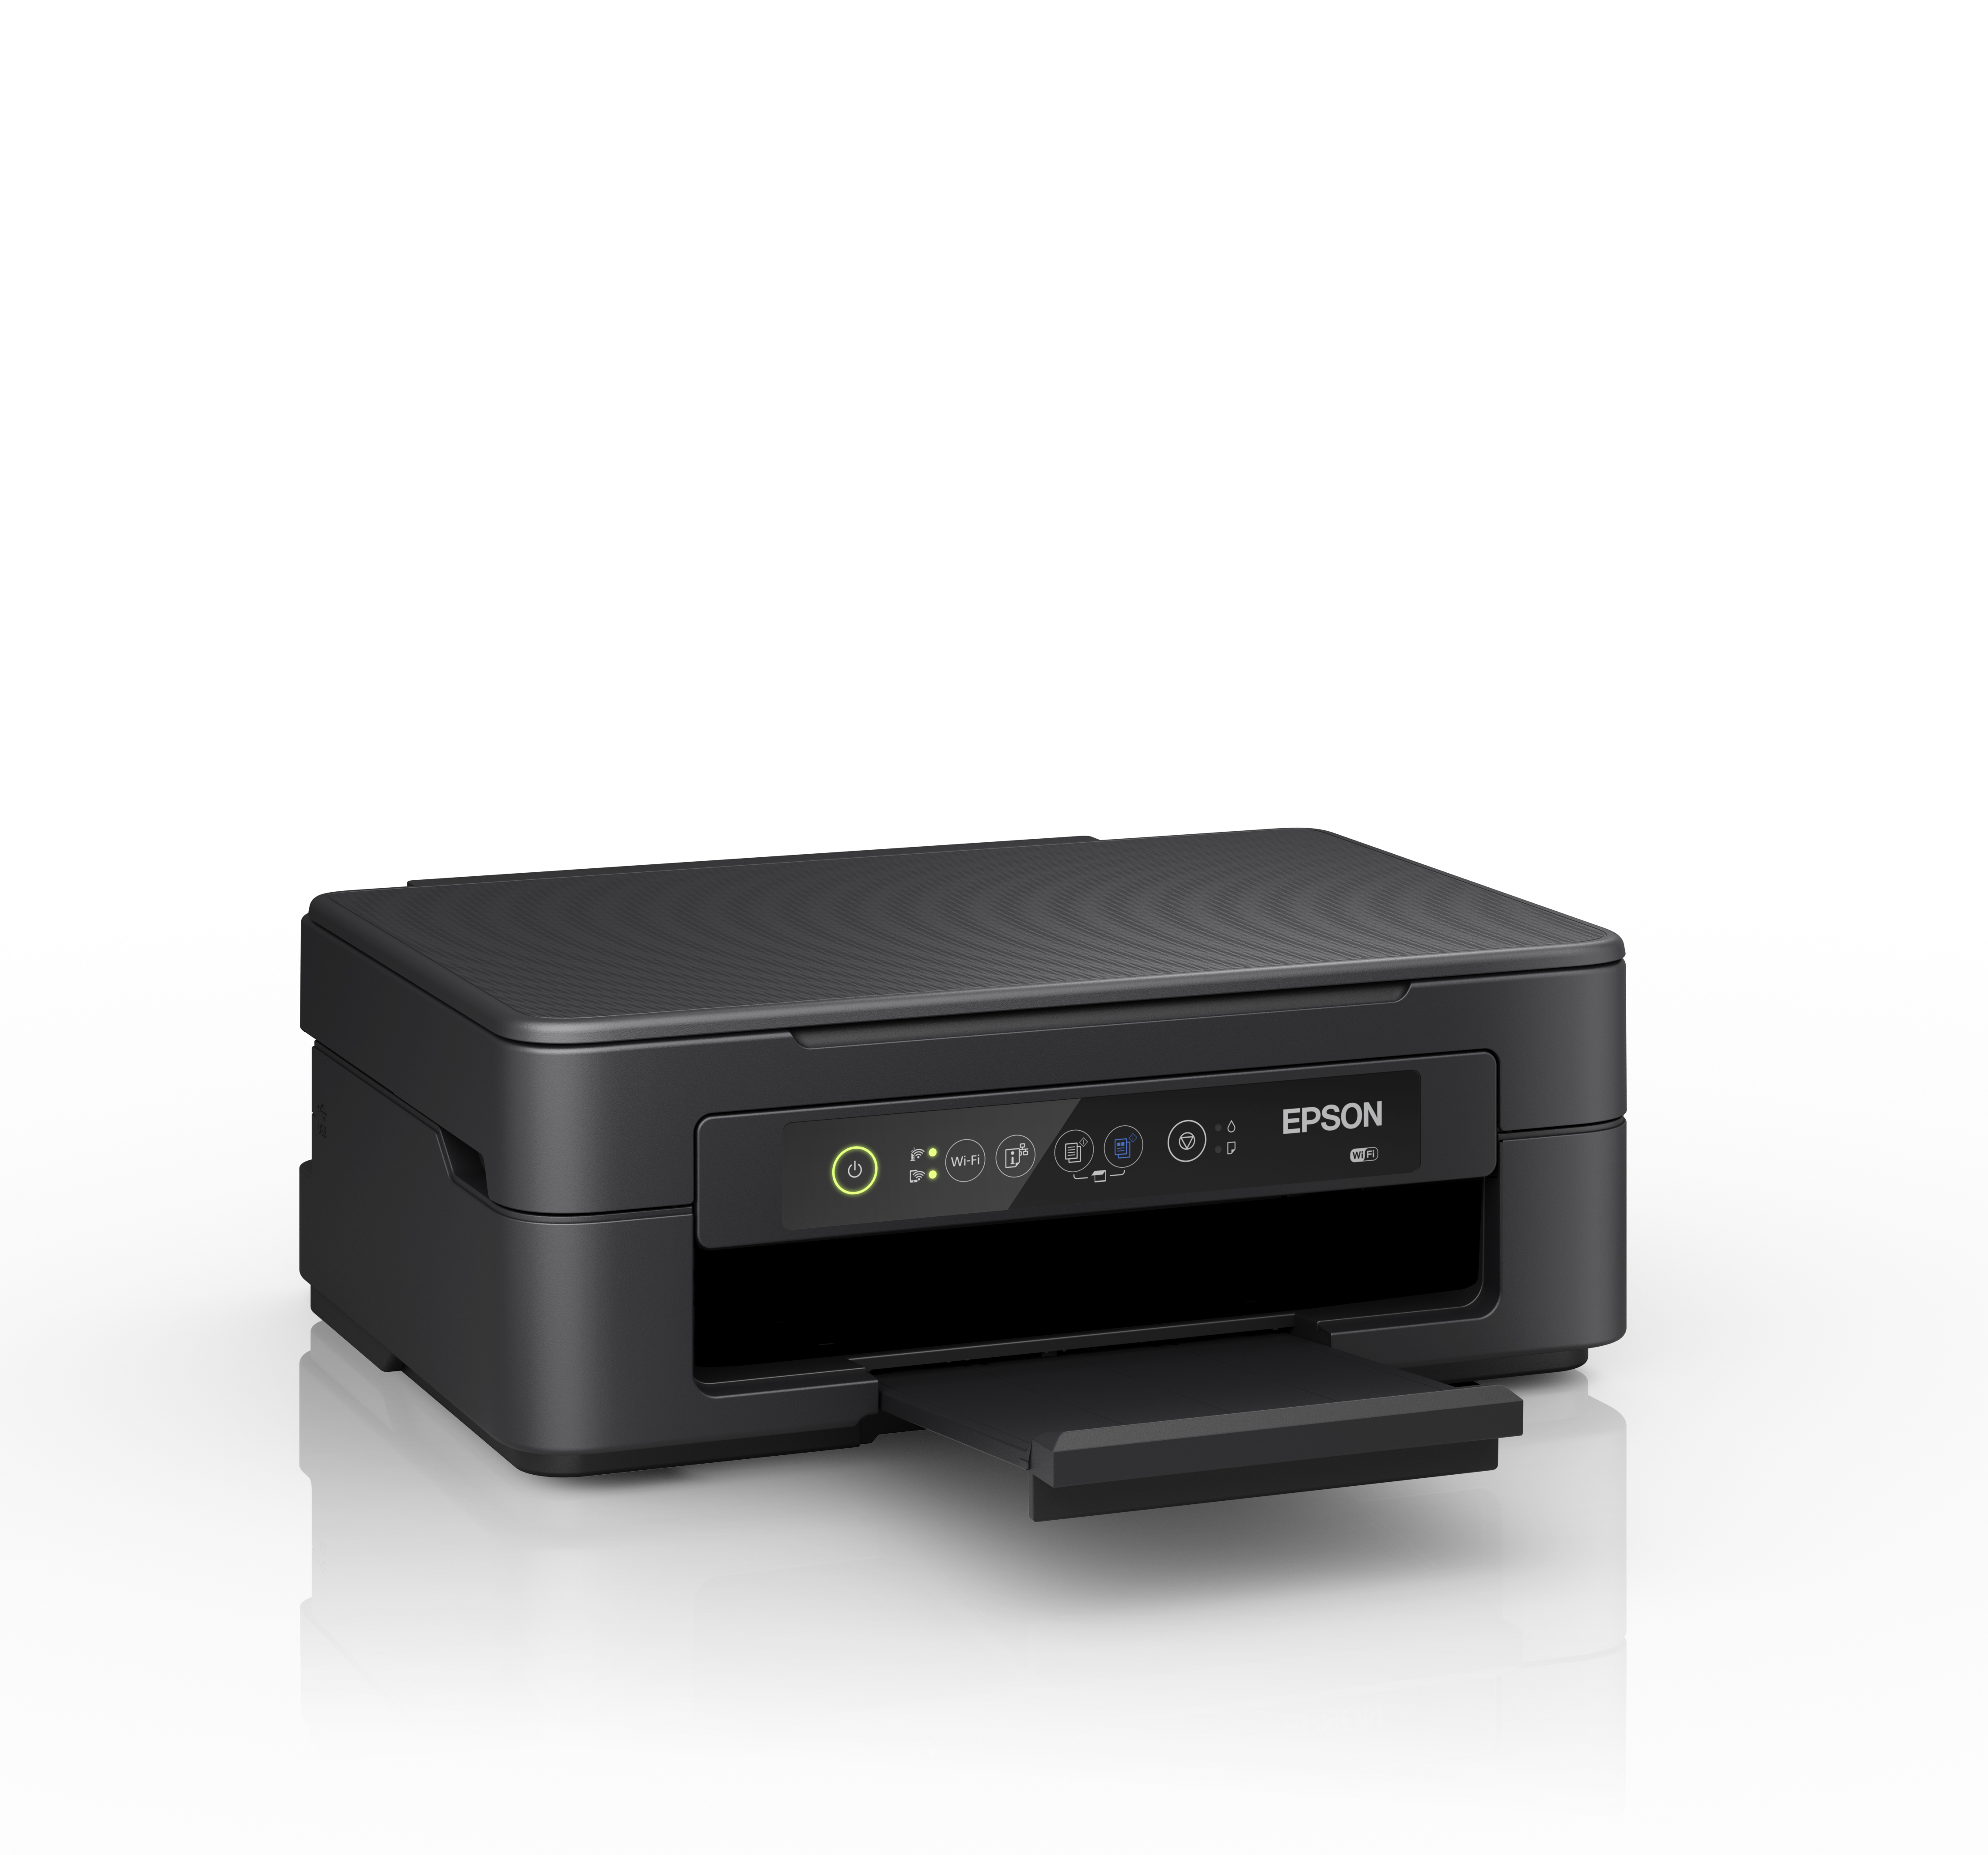 Epson Expression Home XP-2100 7